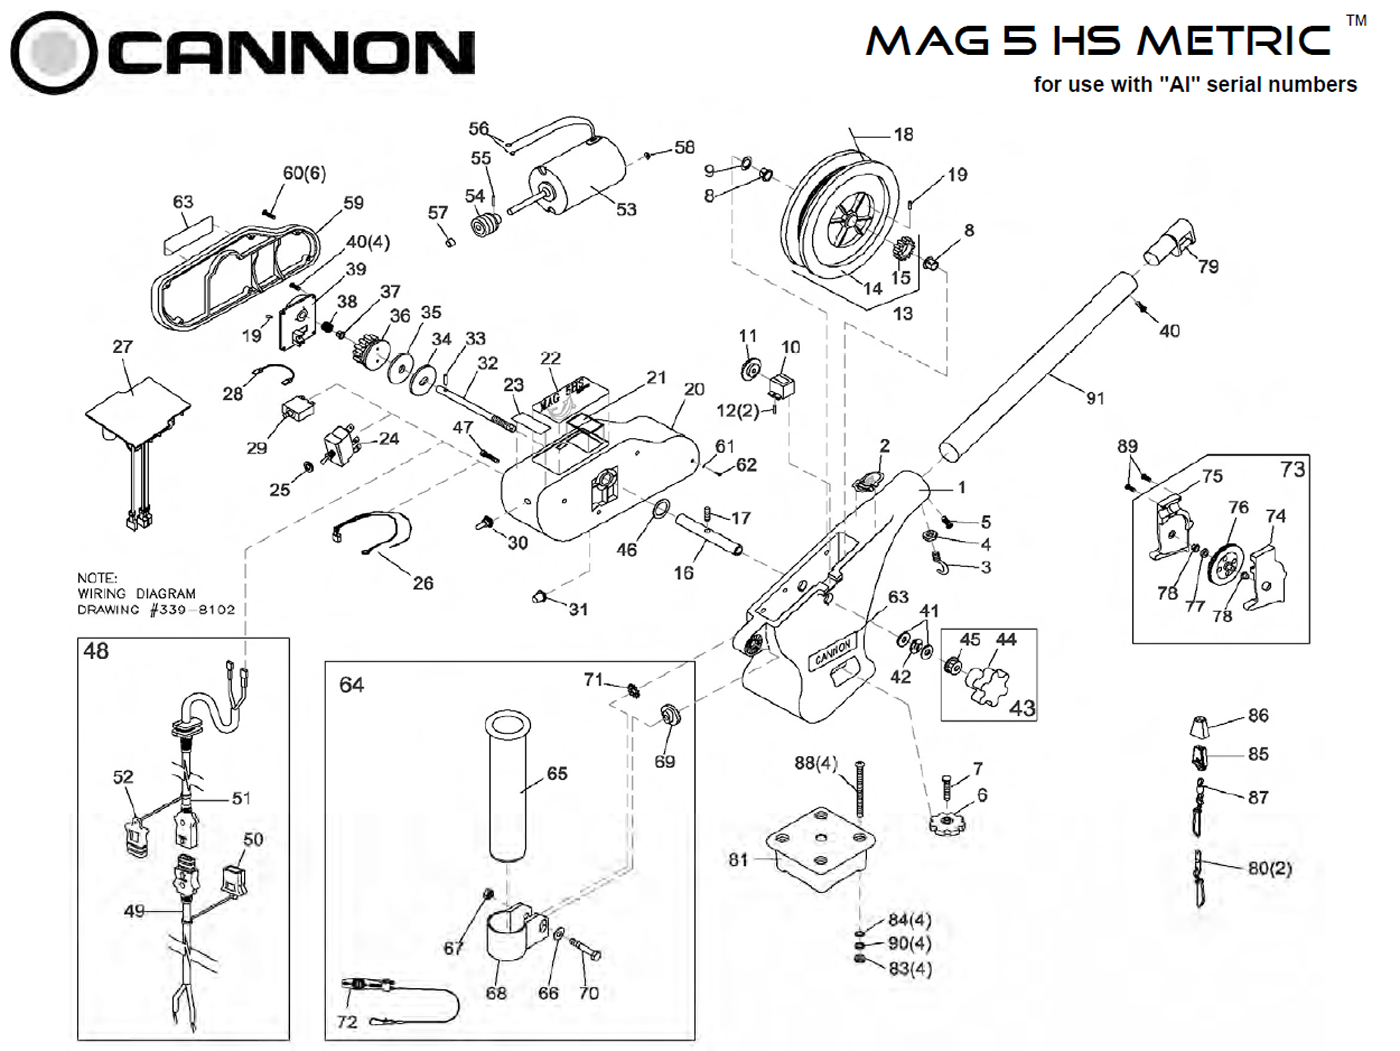 order cannon metric mag 5 hs electric downrigger parts from fish307 com